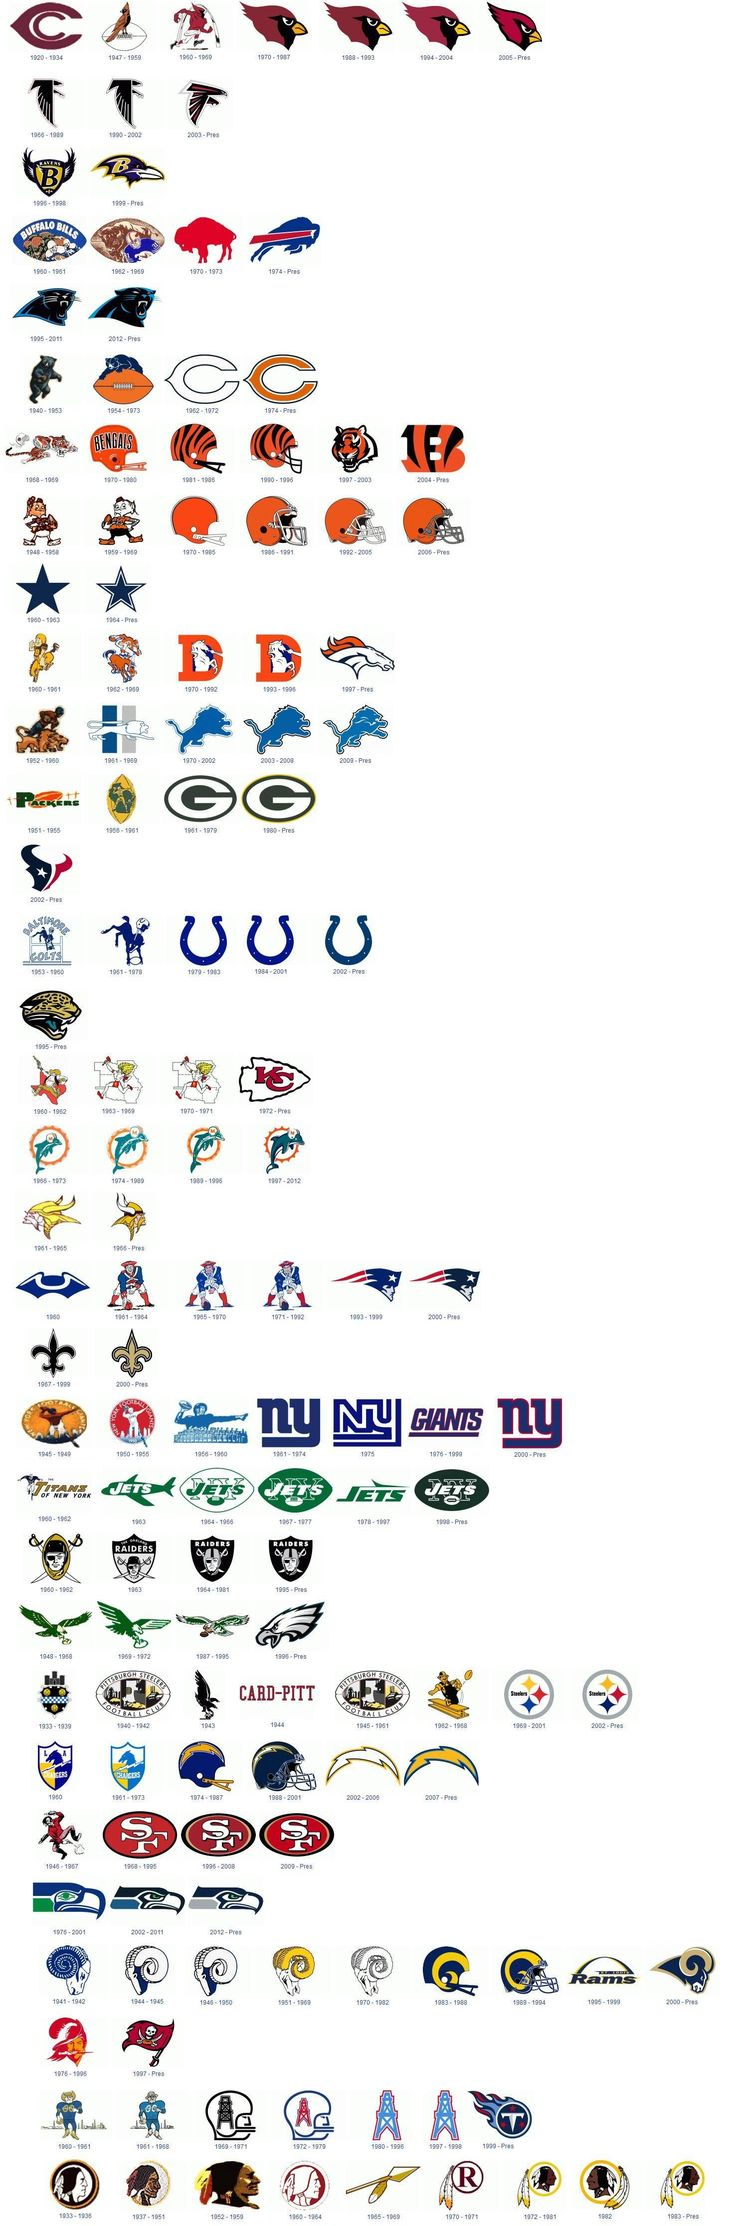 Infographic showing the past 40 years of NFL team logos - Imgur